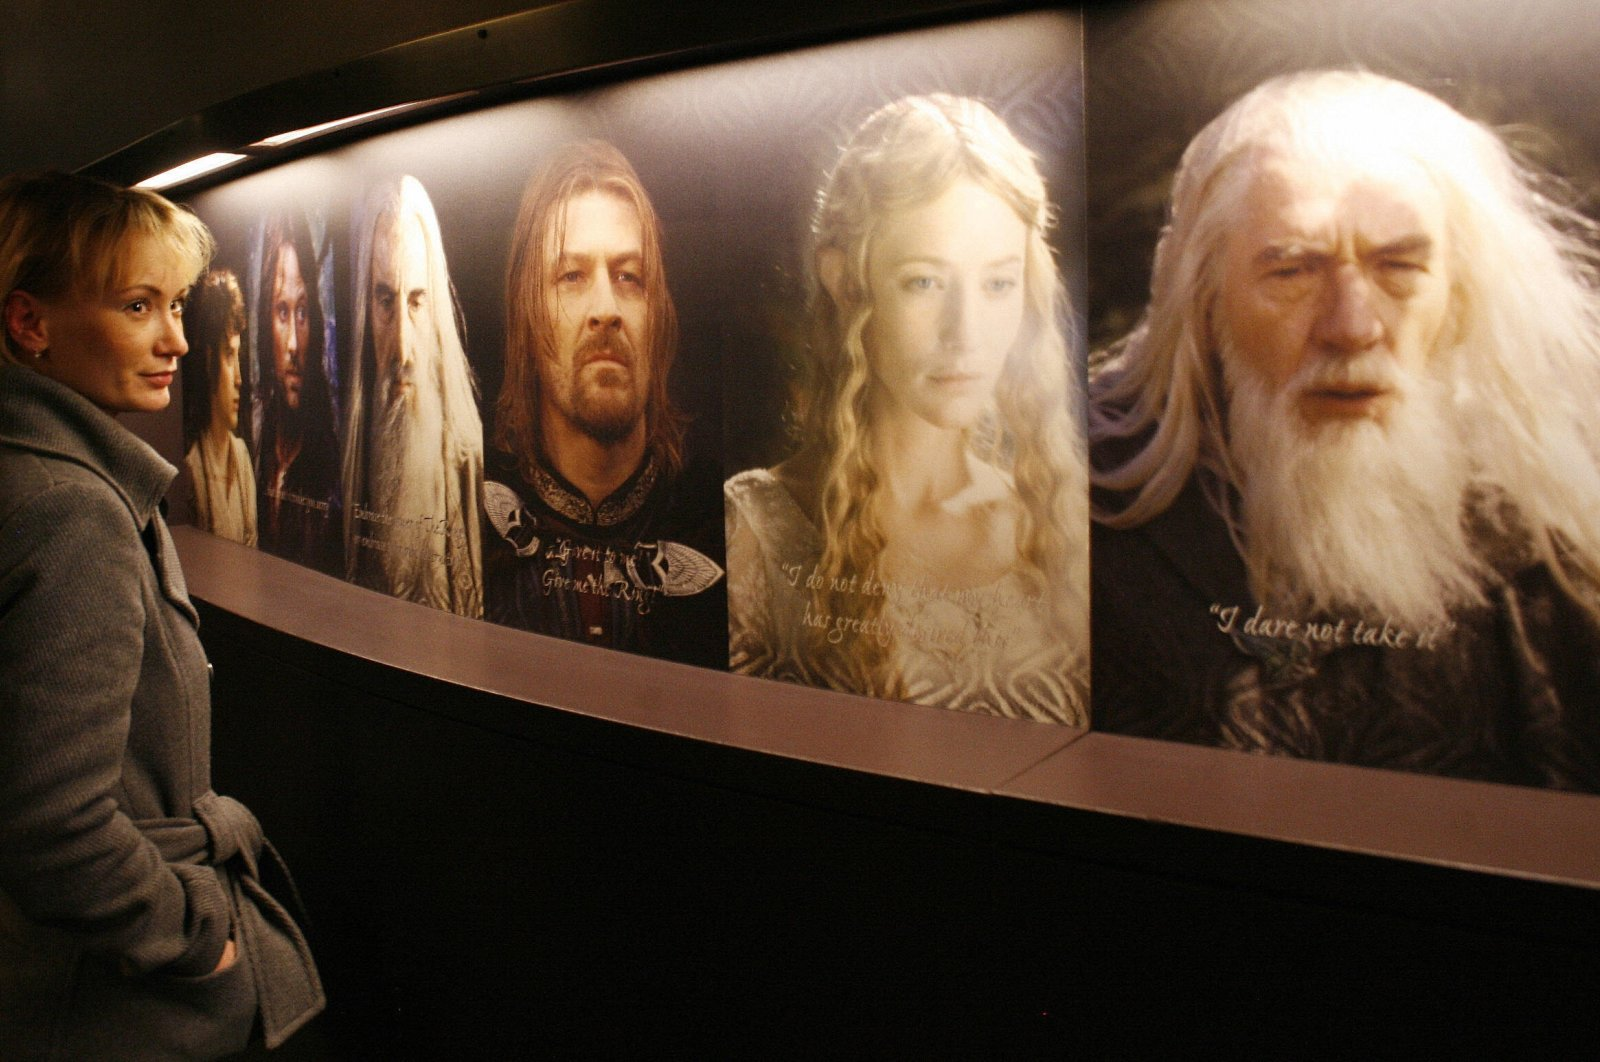 """A woman looks at the different characters from """"The Lord of the Rings"""" films, at an exhibition in Potsdam, eastern Germany, Jan. 30, 2007 . (MICHAEL URBAN/DDP/AFP via Getty Images)"""